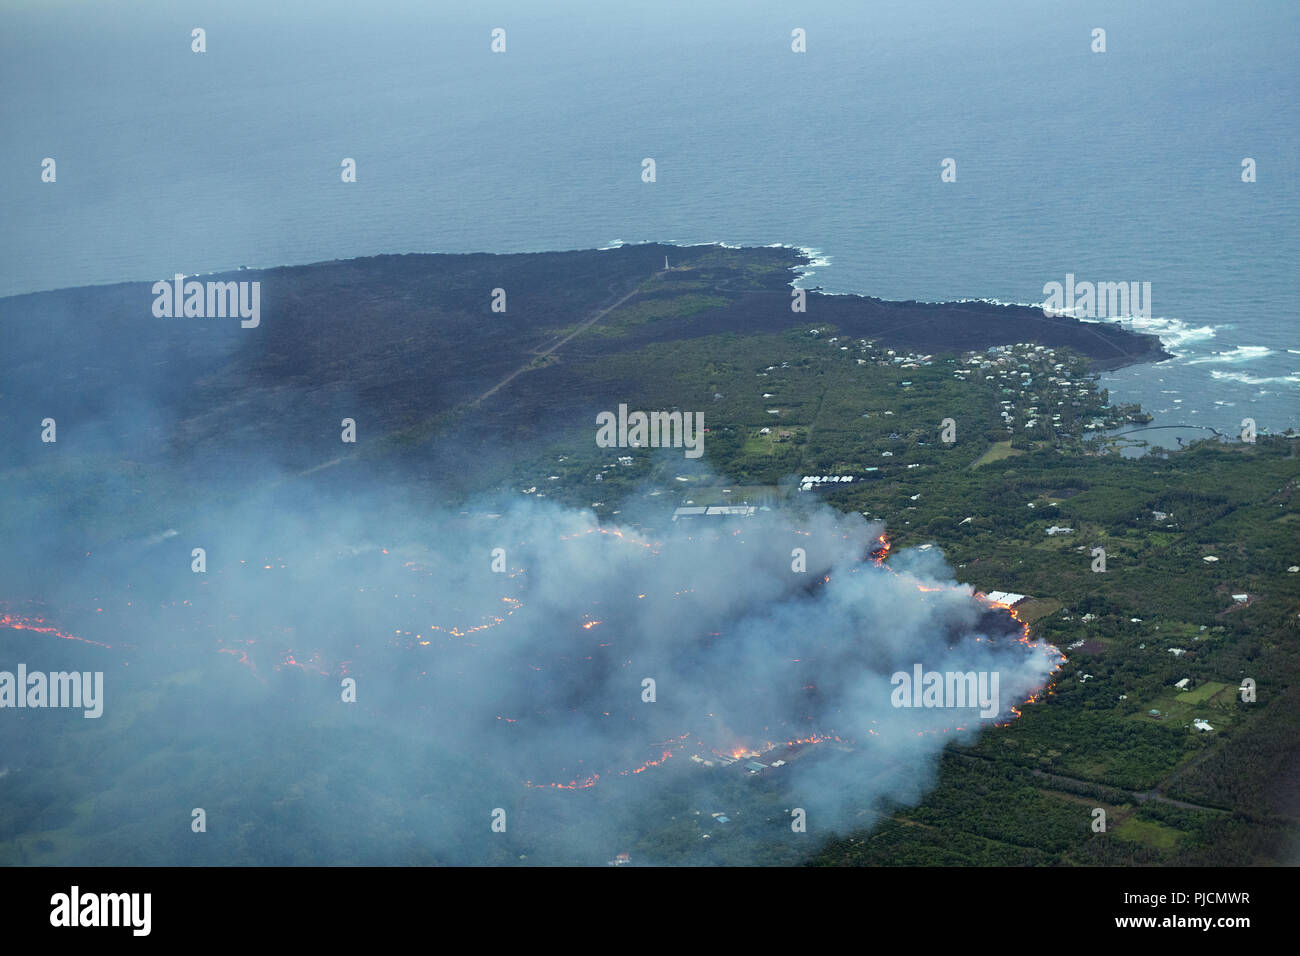 lava originating from Kilauea Volcano, erupting from fissure 8 in Leilani Estates, near Pahoa, flows through lower Puna District into Kapoho, approach - Stock Image